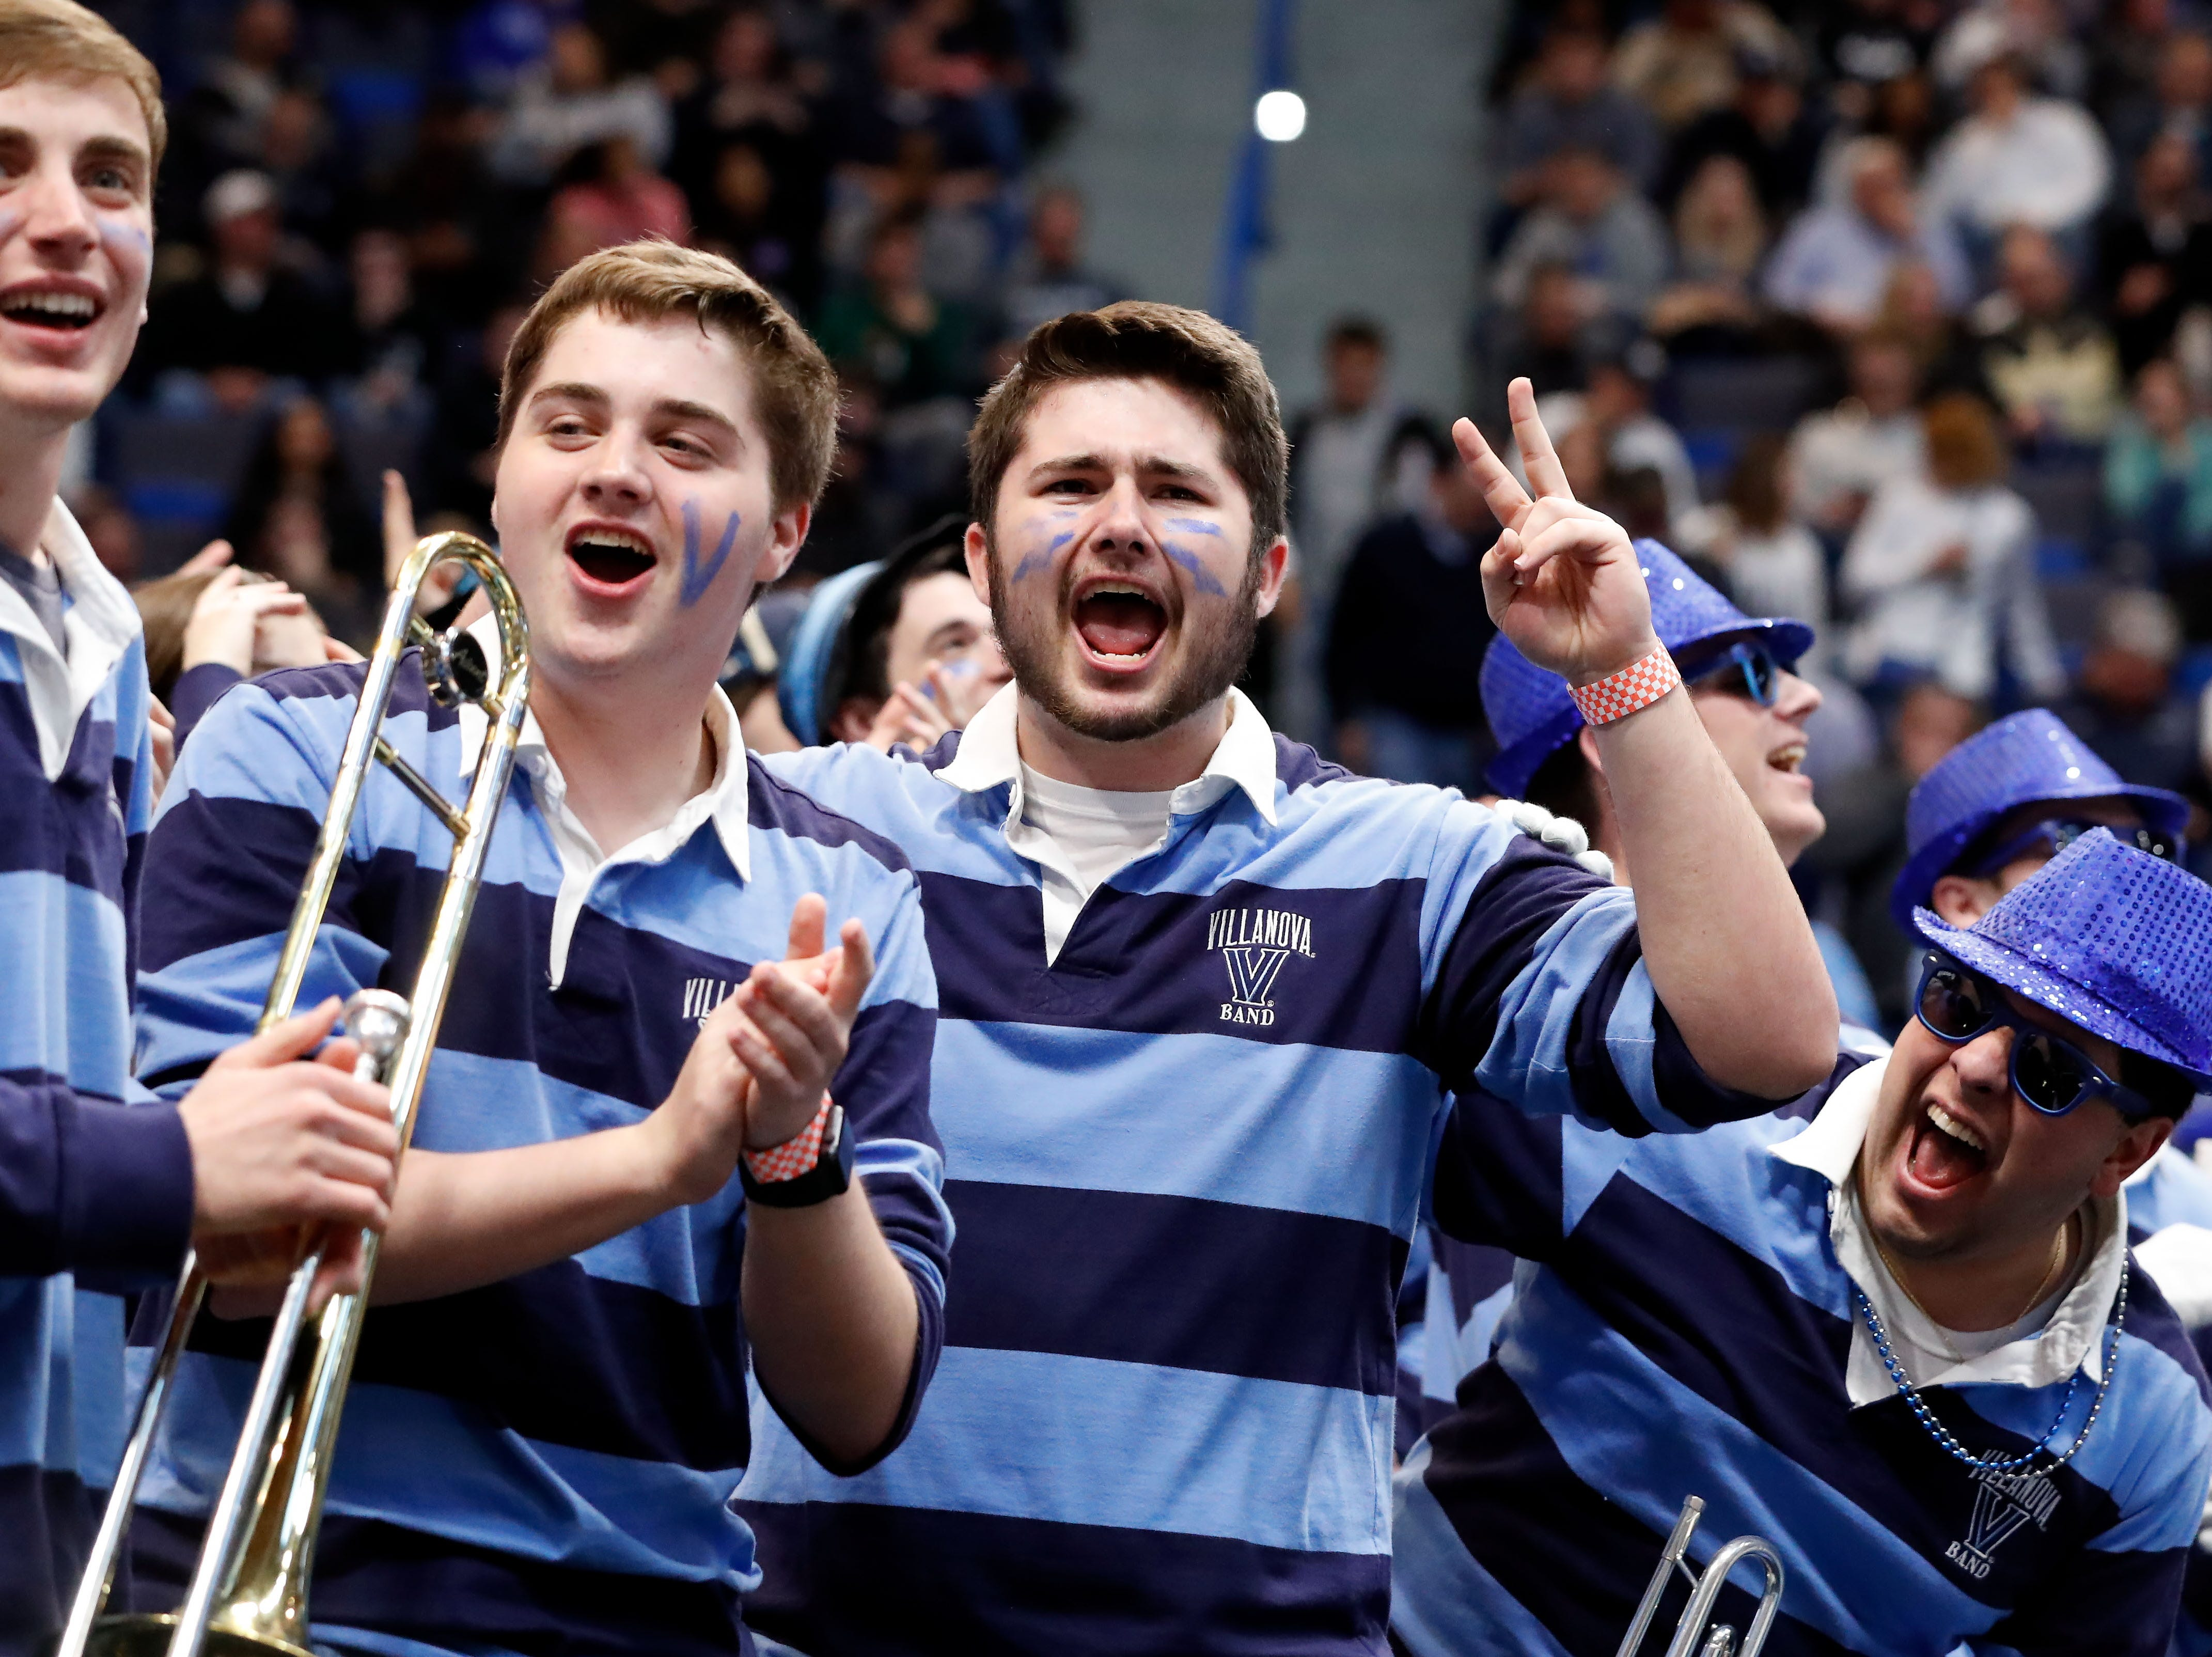 Mar 23, 2019; Hartford, CT, USA; The Villanova Wildcats band cheers before a game against the Purdue Boilermakers in the second round of the 2019 NCAA Tournament at XL Center. Mandatory Credit: David Butler II-USA TODAY Sports